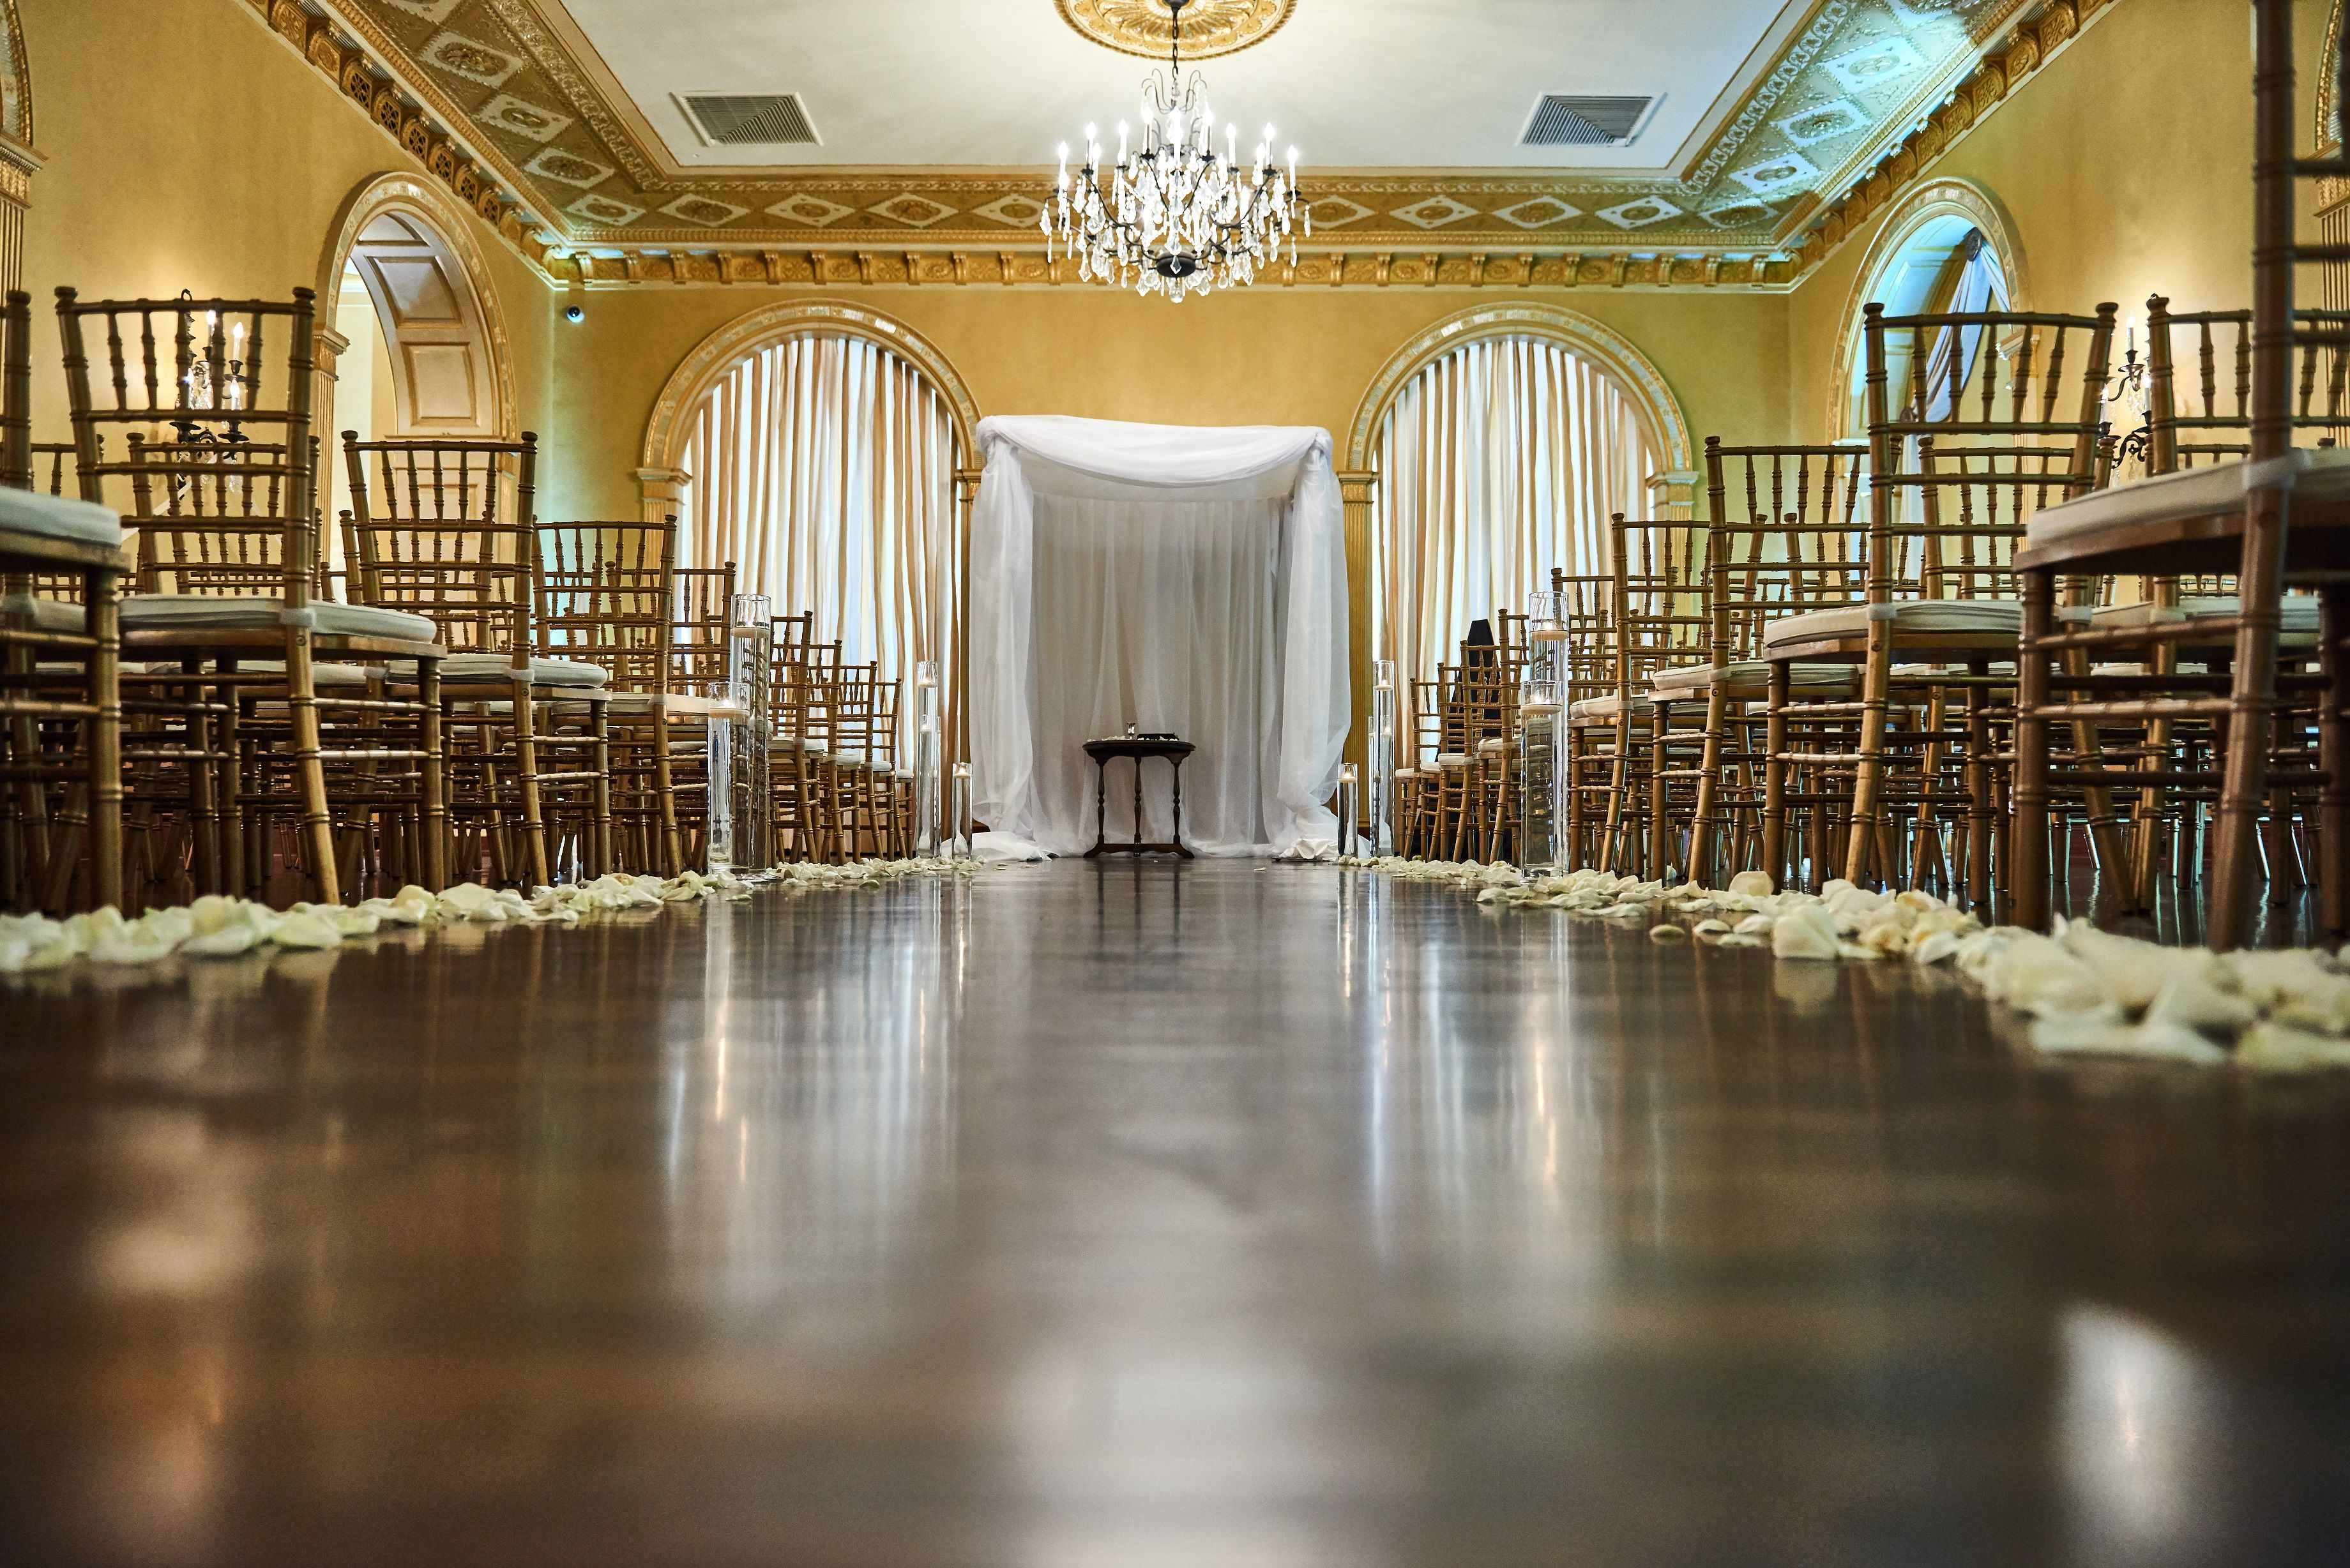 Wedding decorations black and gold  Los Angeles Event Planner specializing in weddings and events